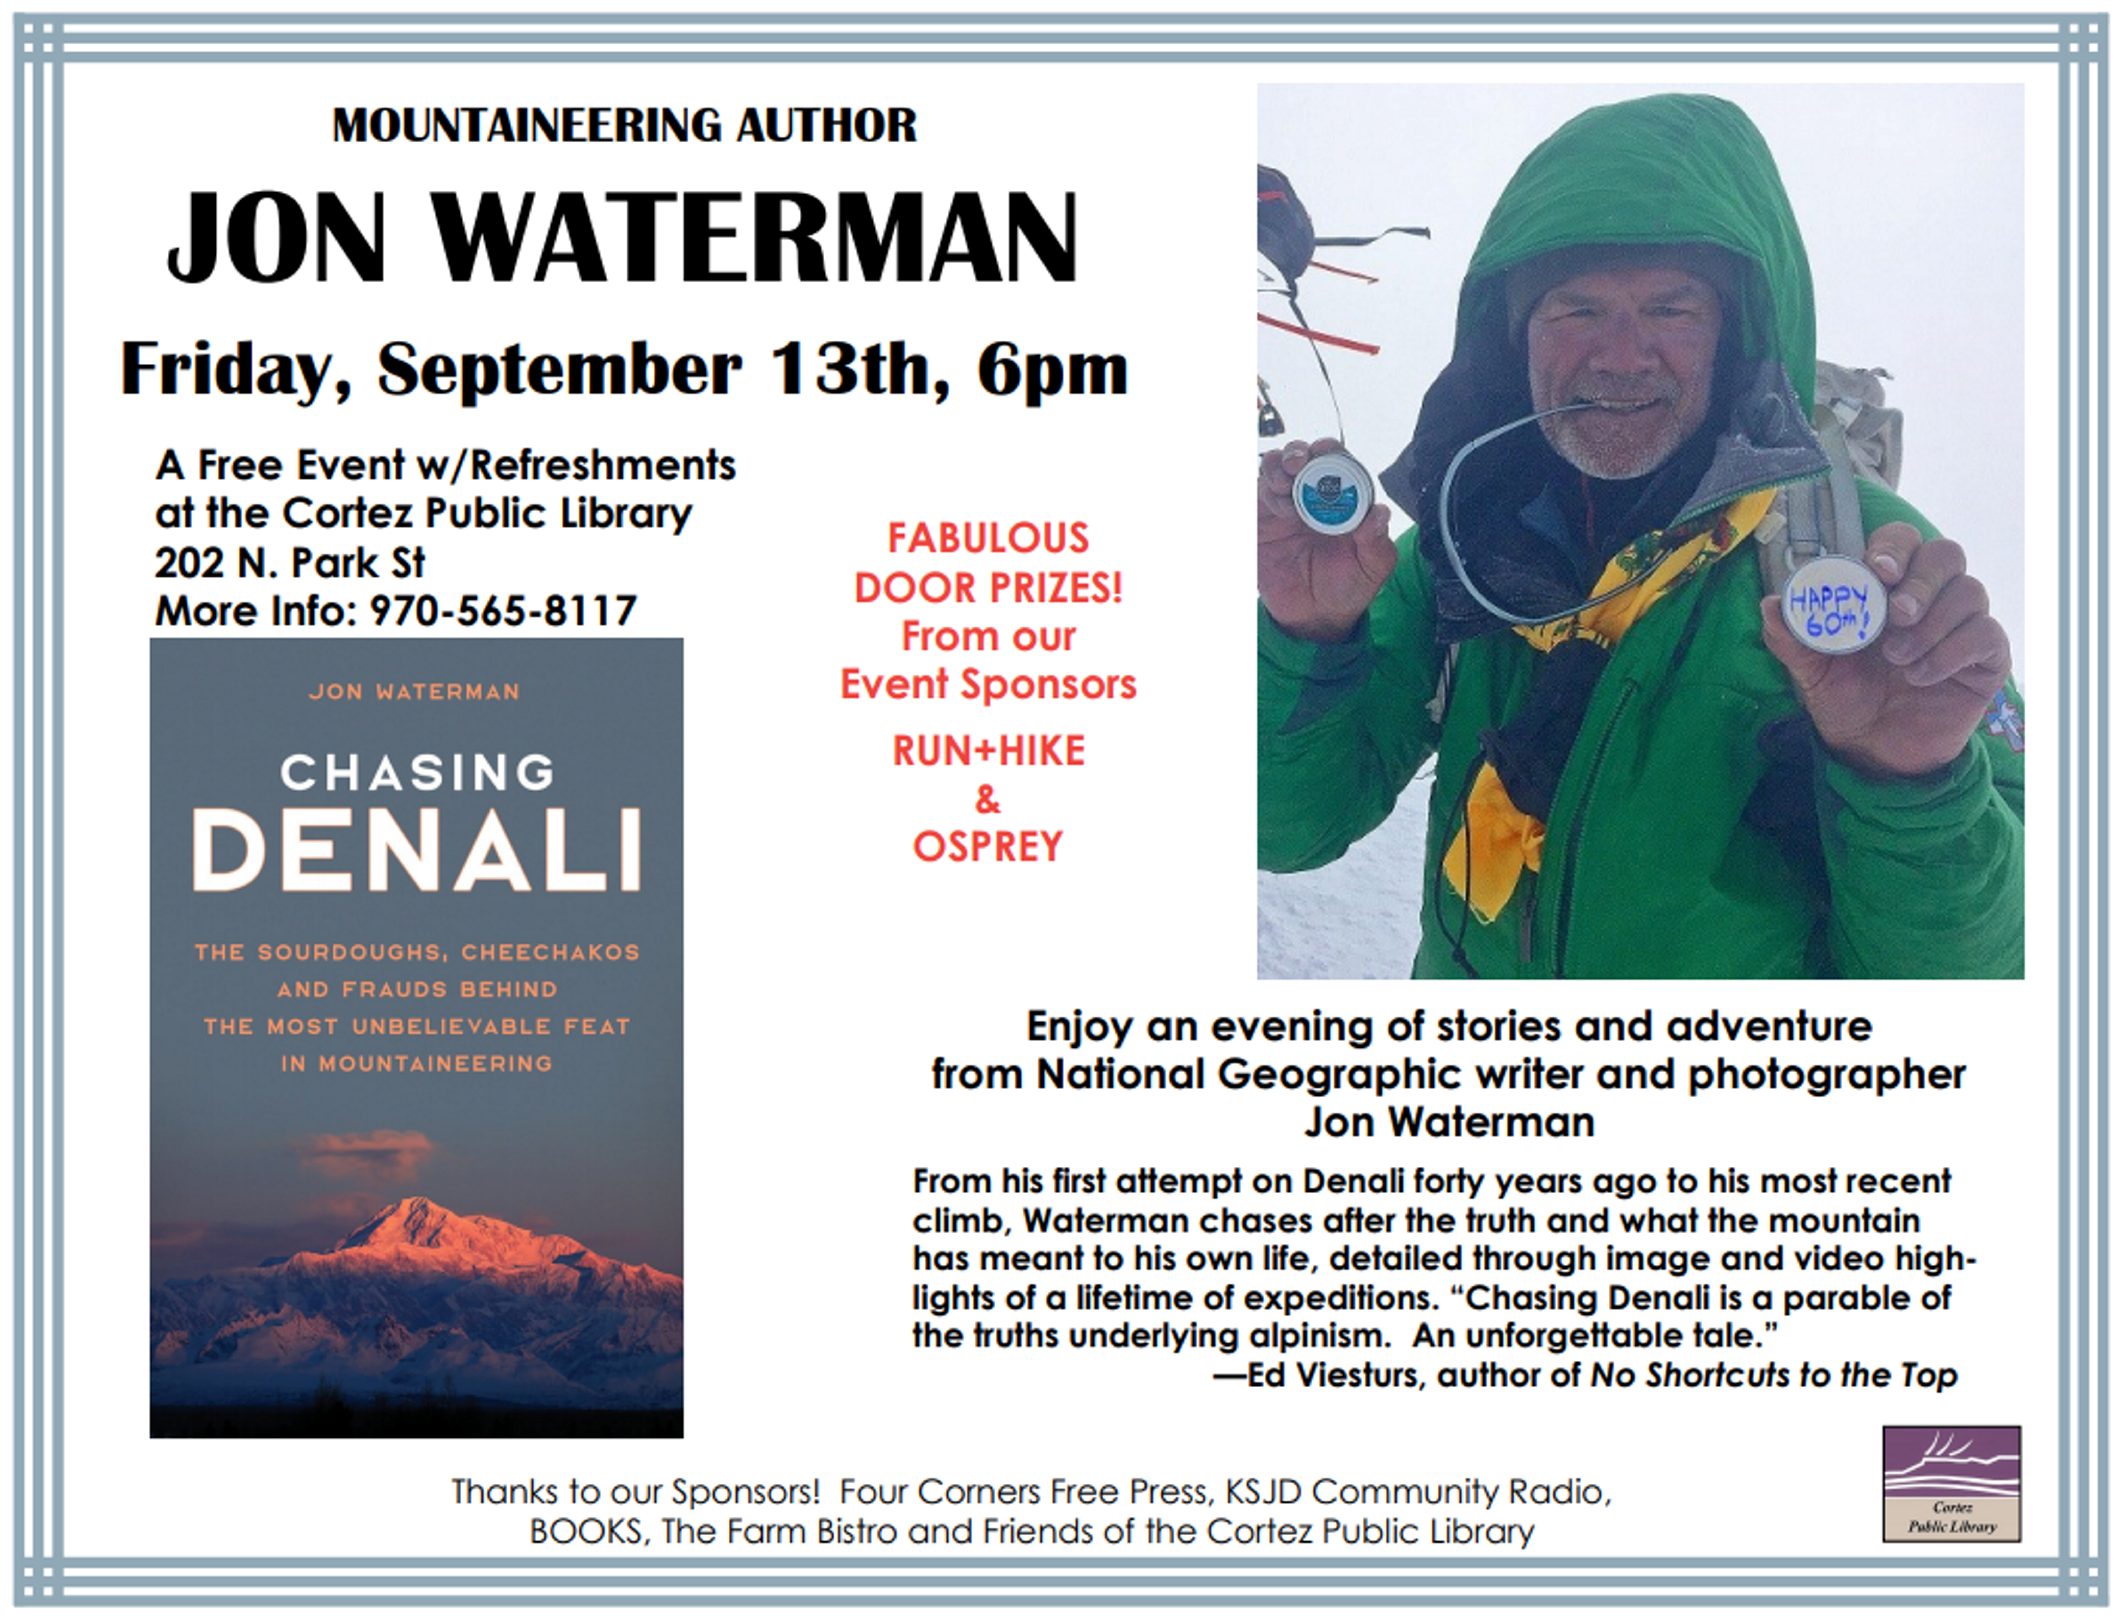 Mountaineering author Jon Waterman to visit Cortez Library